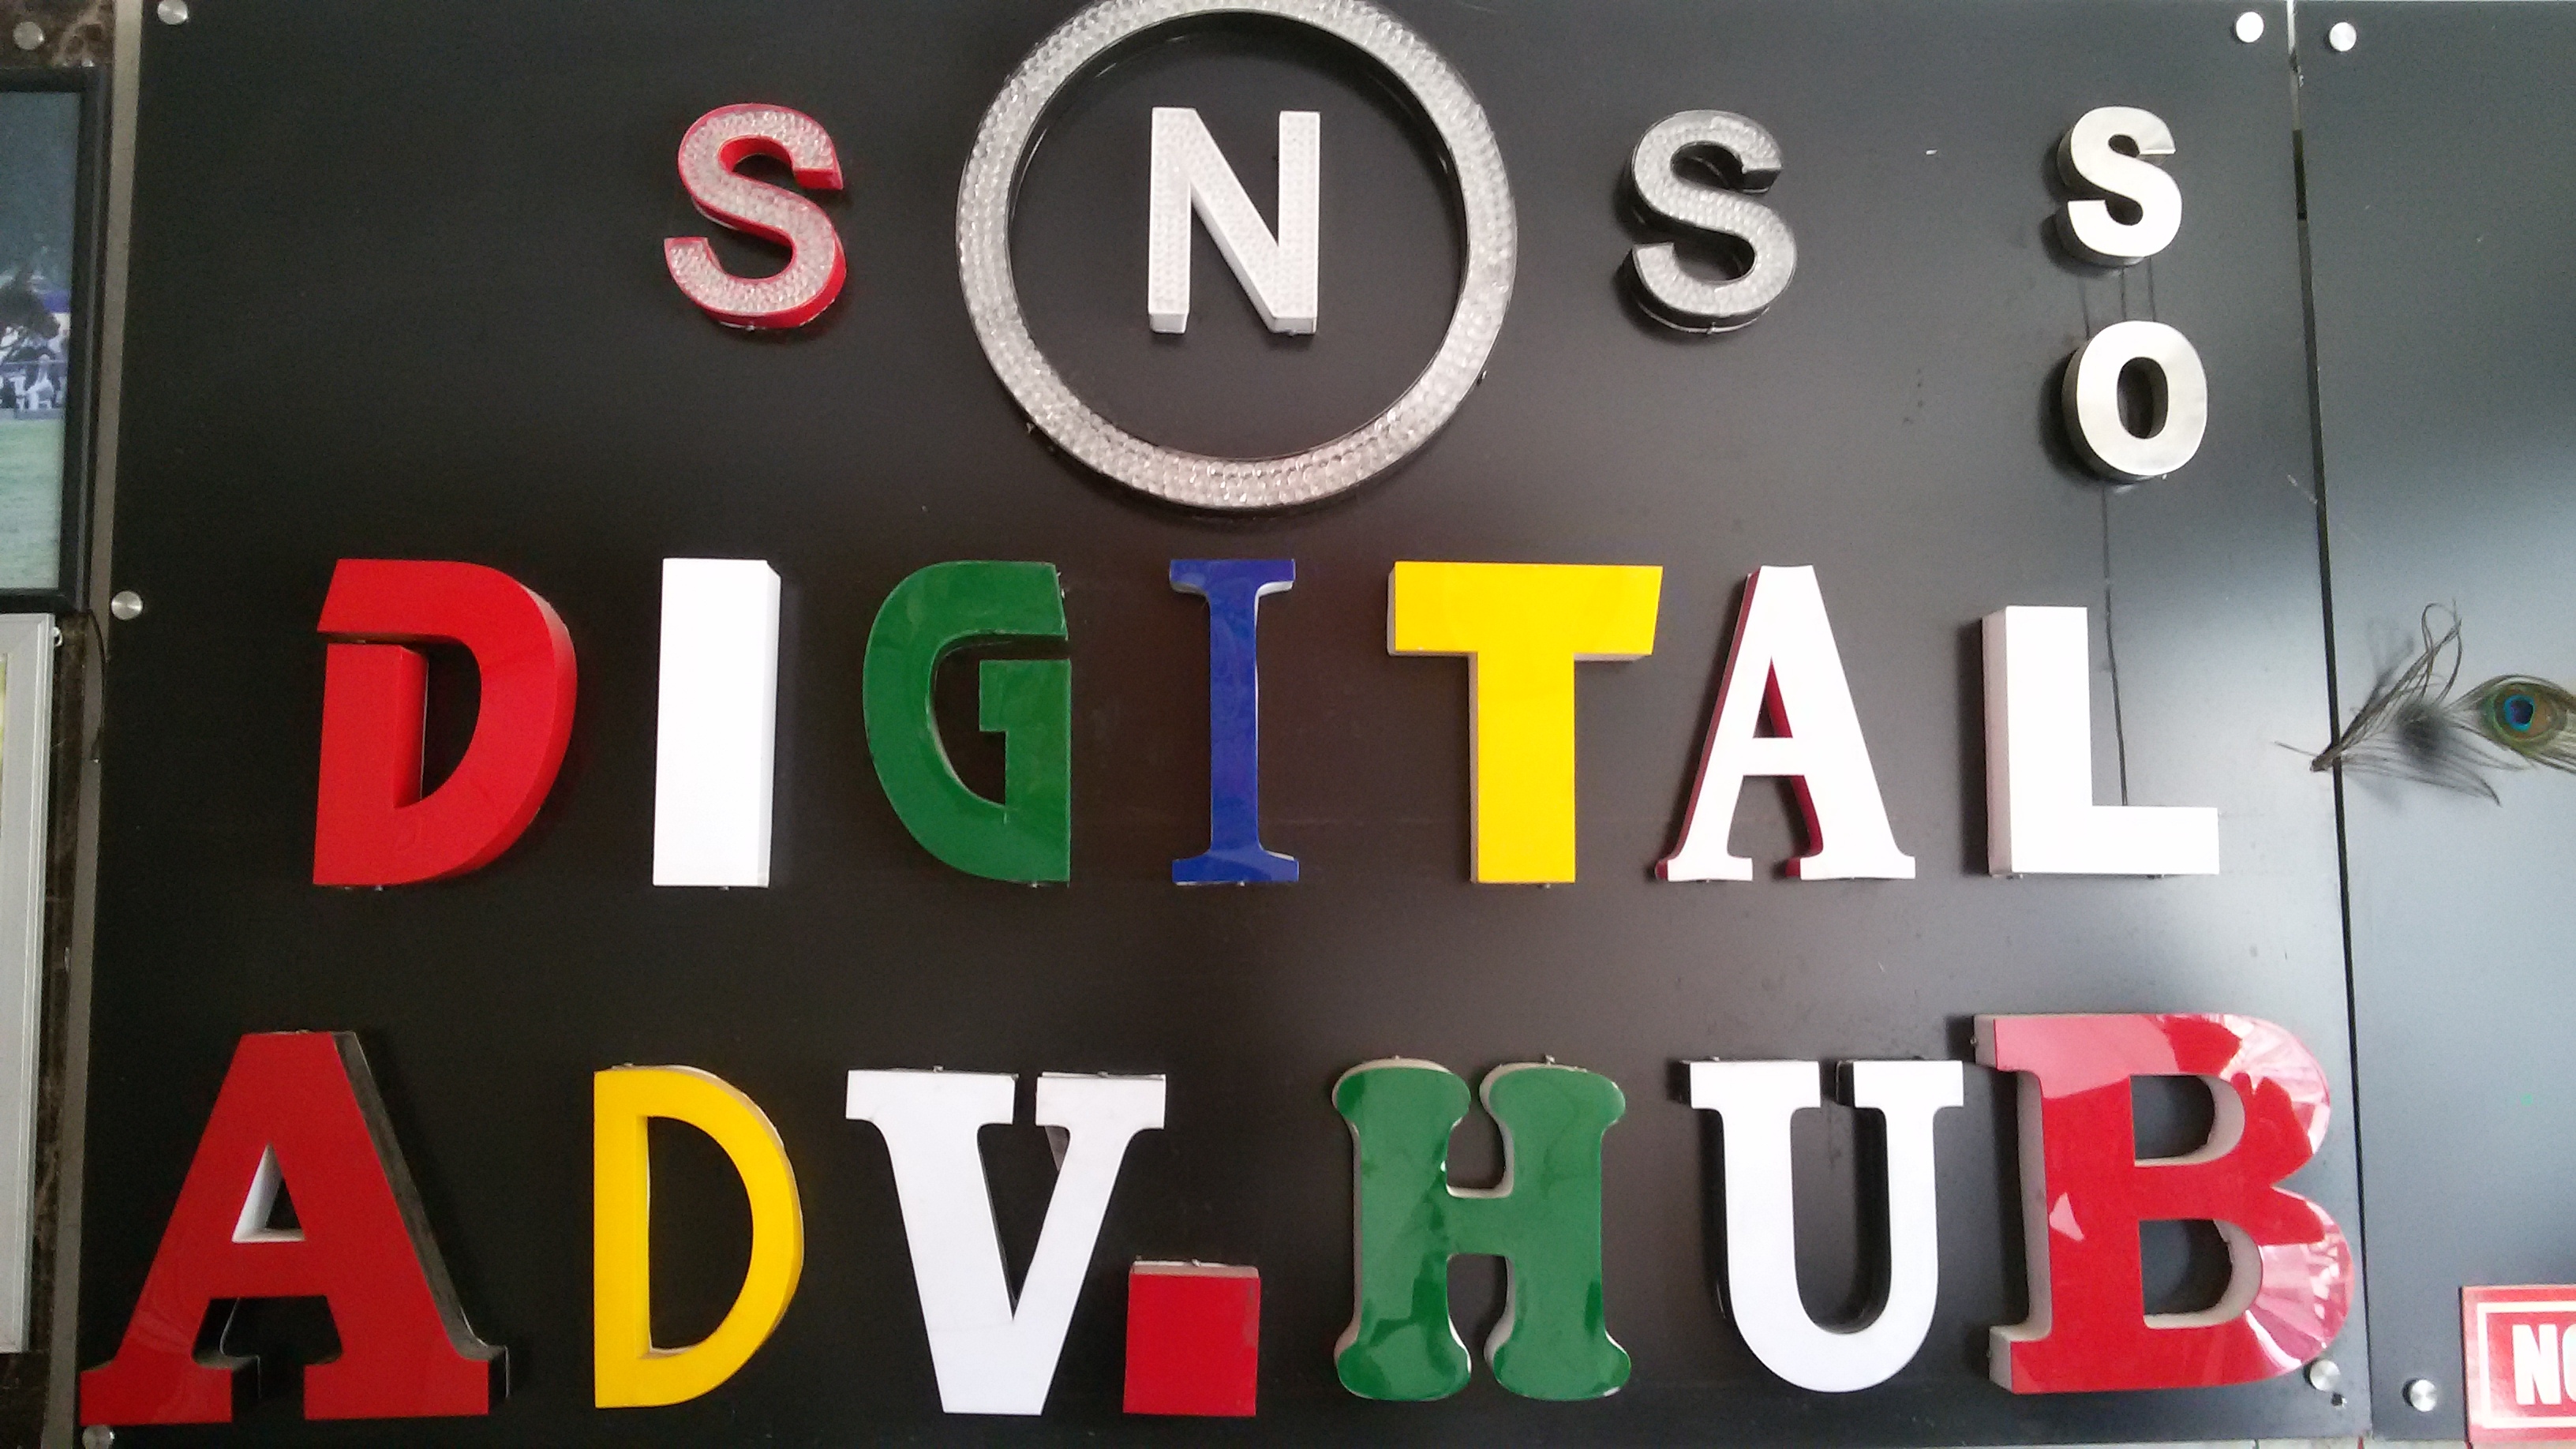 SNS Digital Advertising Hub - logo